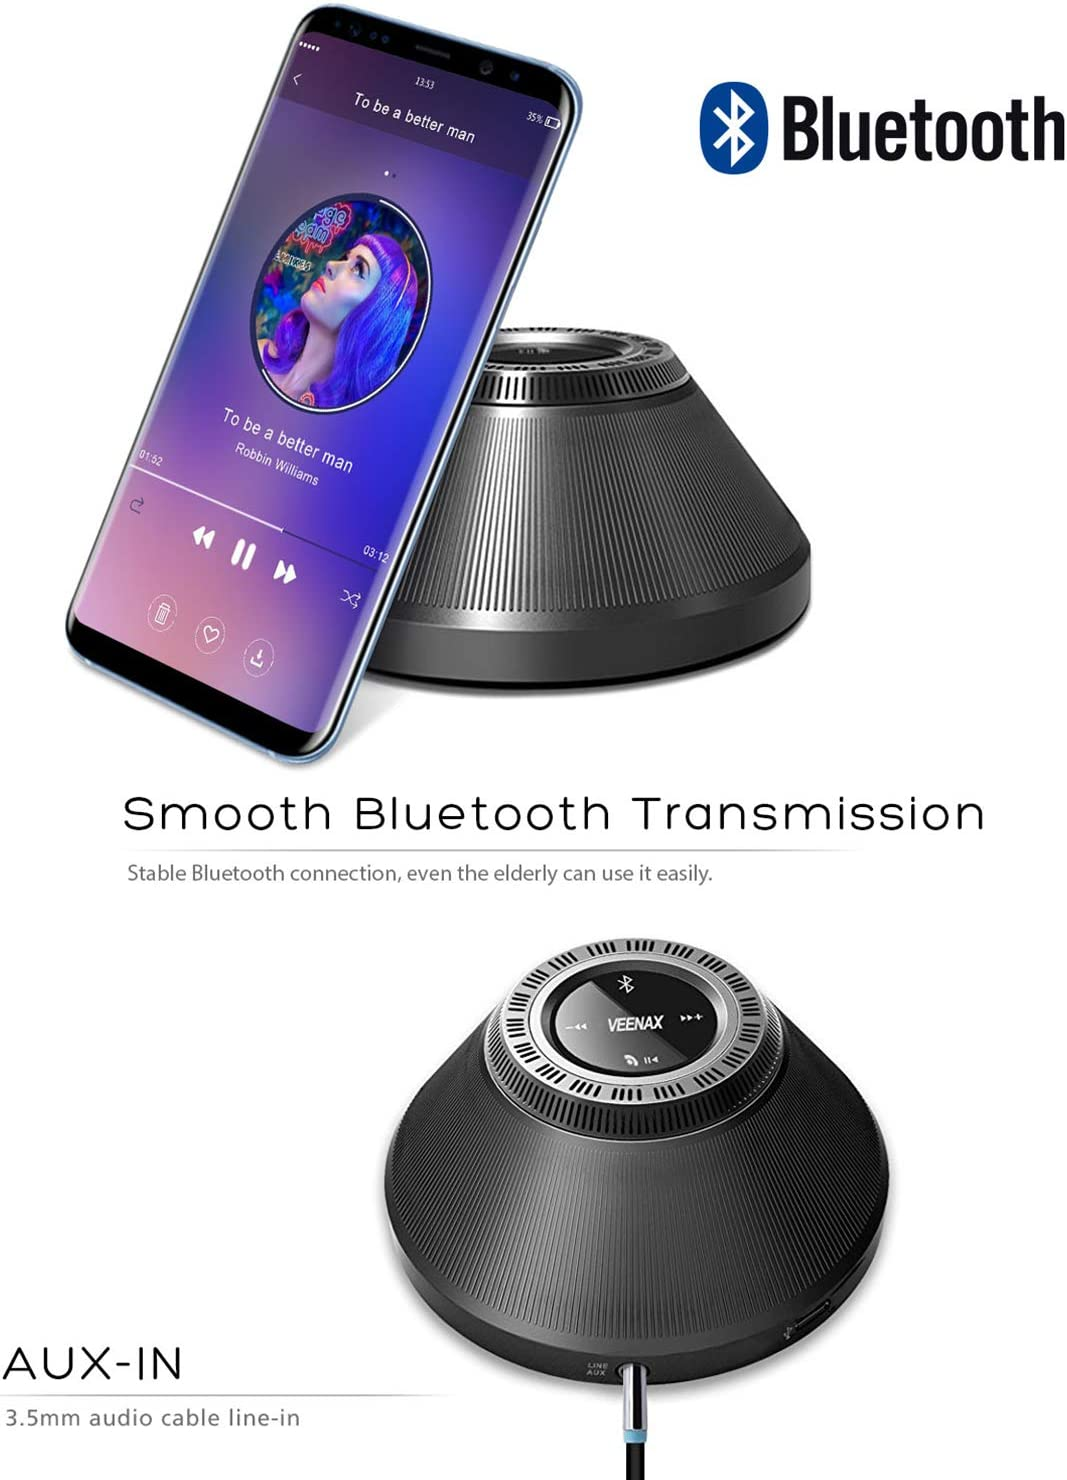 Built-in Mic Enhanced Bass Wireless Portable Speaker with Touch Screen 10-Hour Playtime Black Outdoor Stereo Speaker for Phone Computer PC Tablet MP3 VEENAX PS10 Bluetooth Mini Speakers